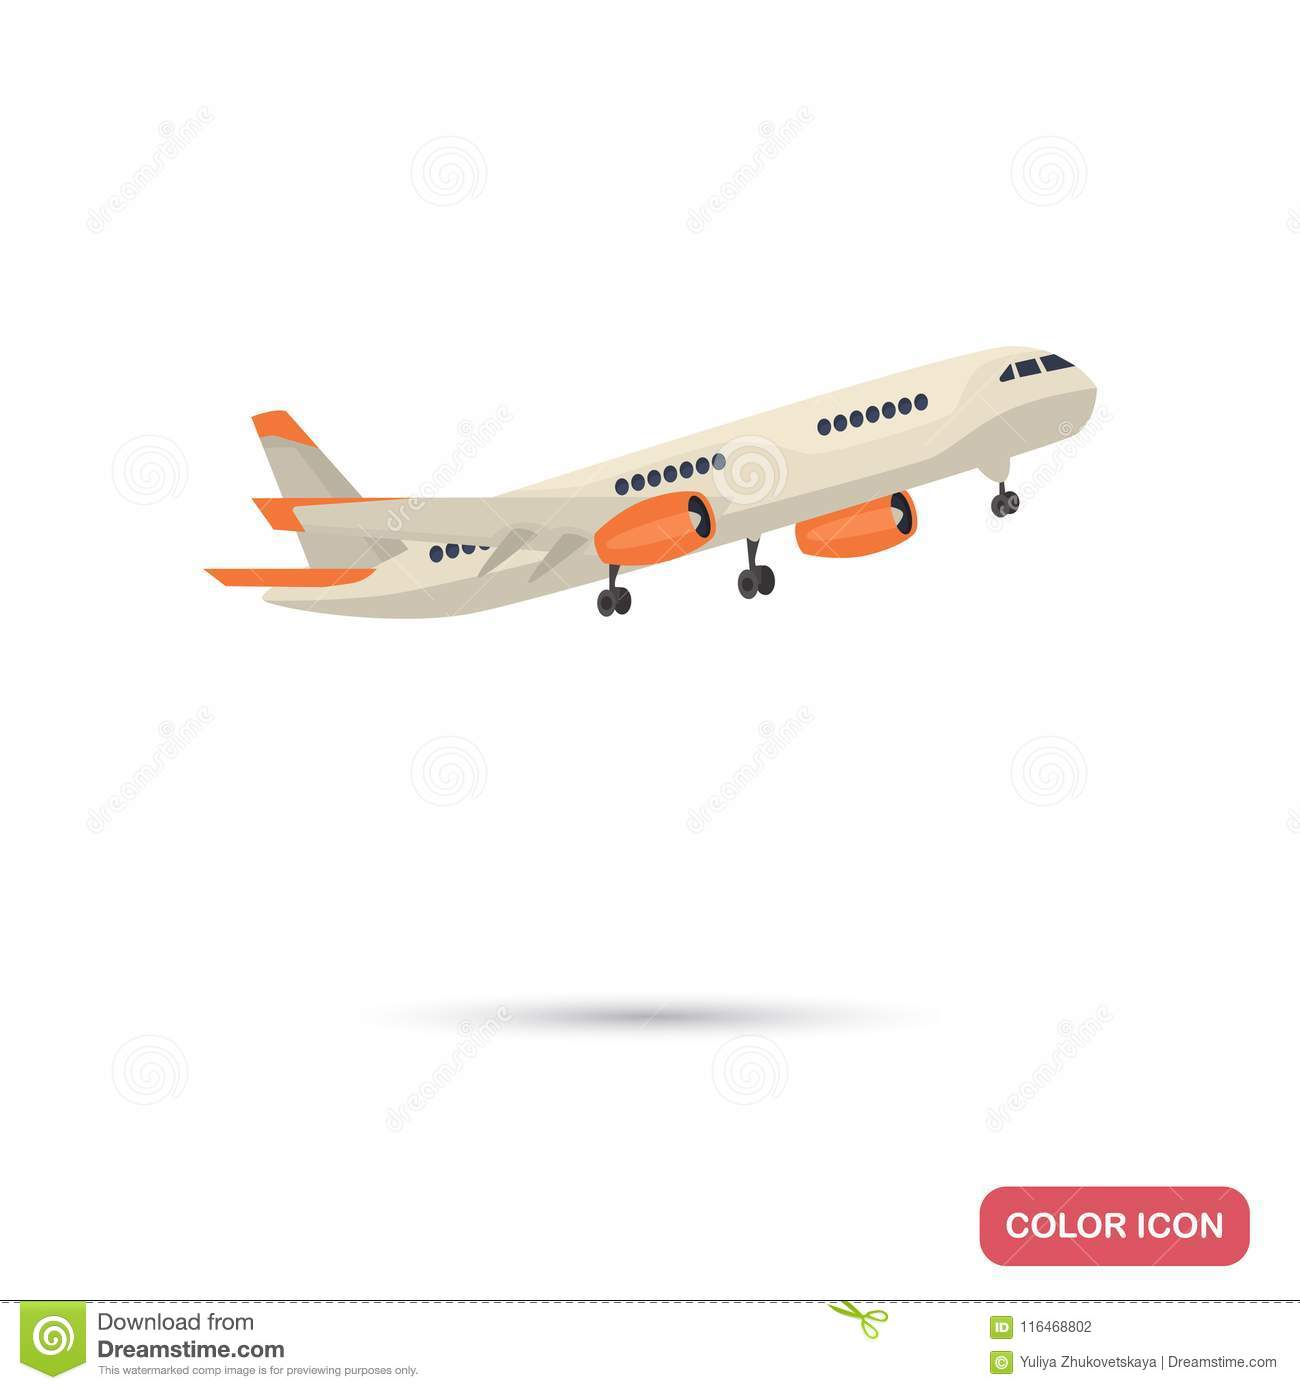 Departure Of The Passenger Plane Color Flat Icon Stock Vector Illustration Of Wing Plane 116468802